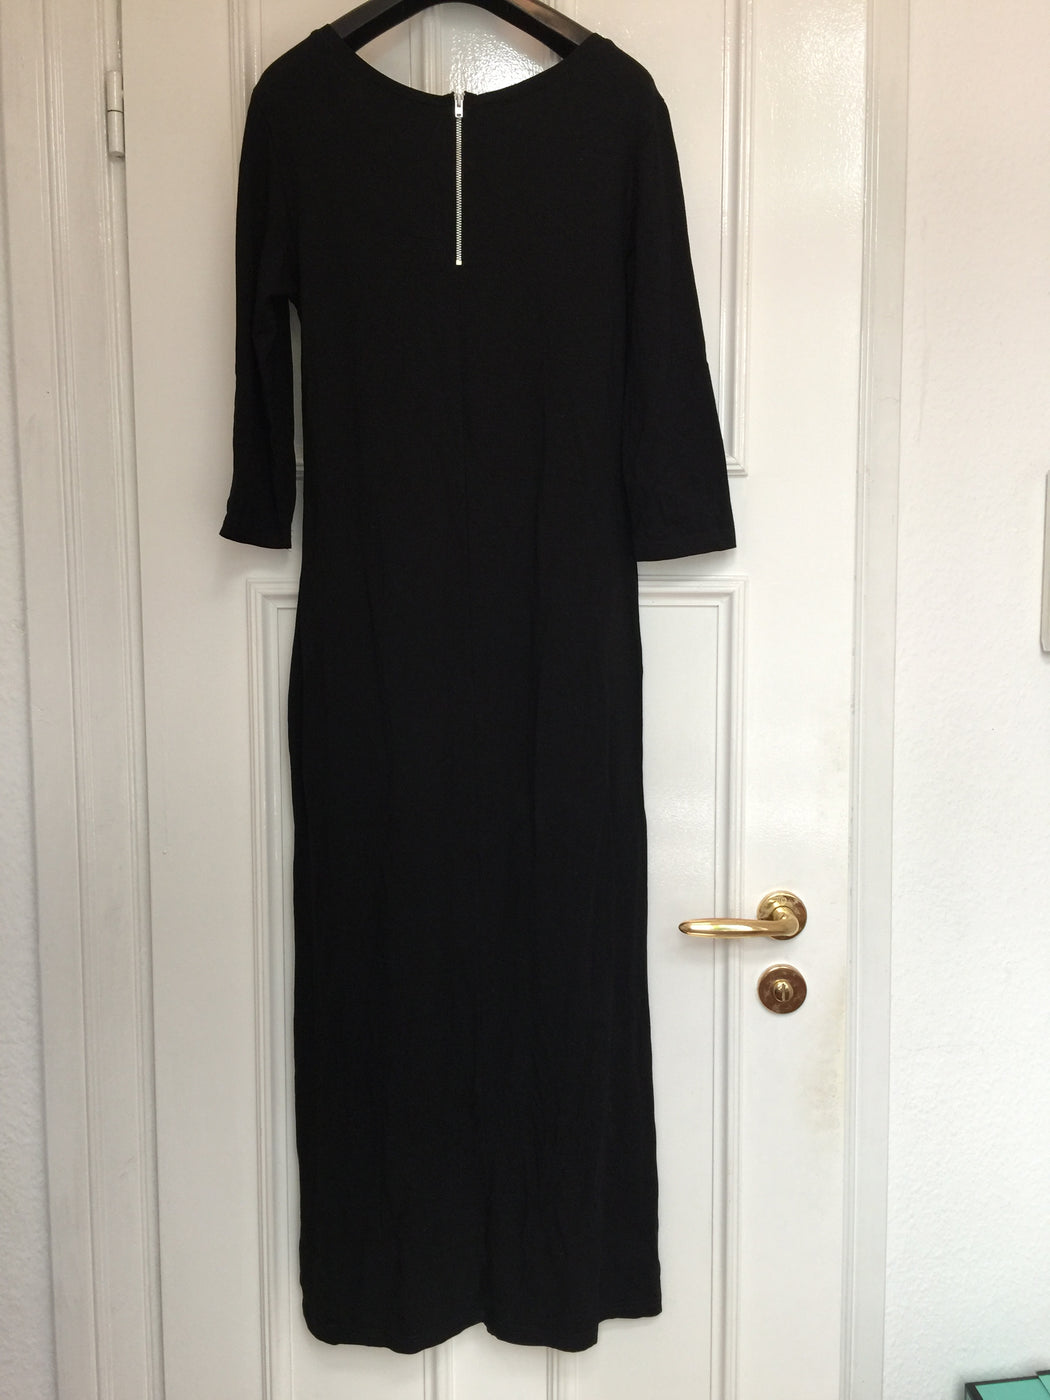 Black Rayon Mix Vintage Jersey Dress Elongated Size S/M